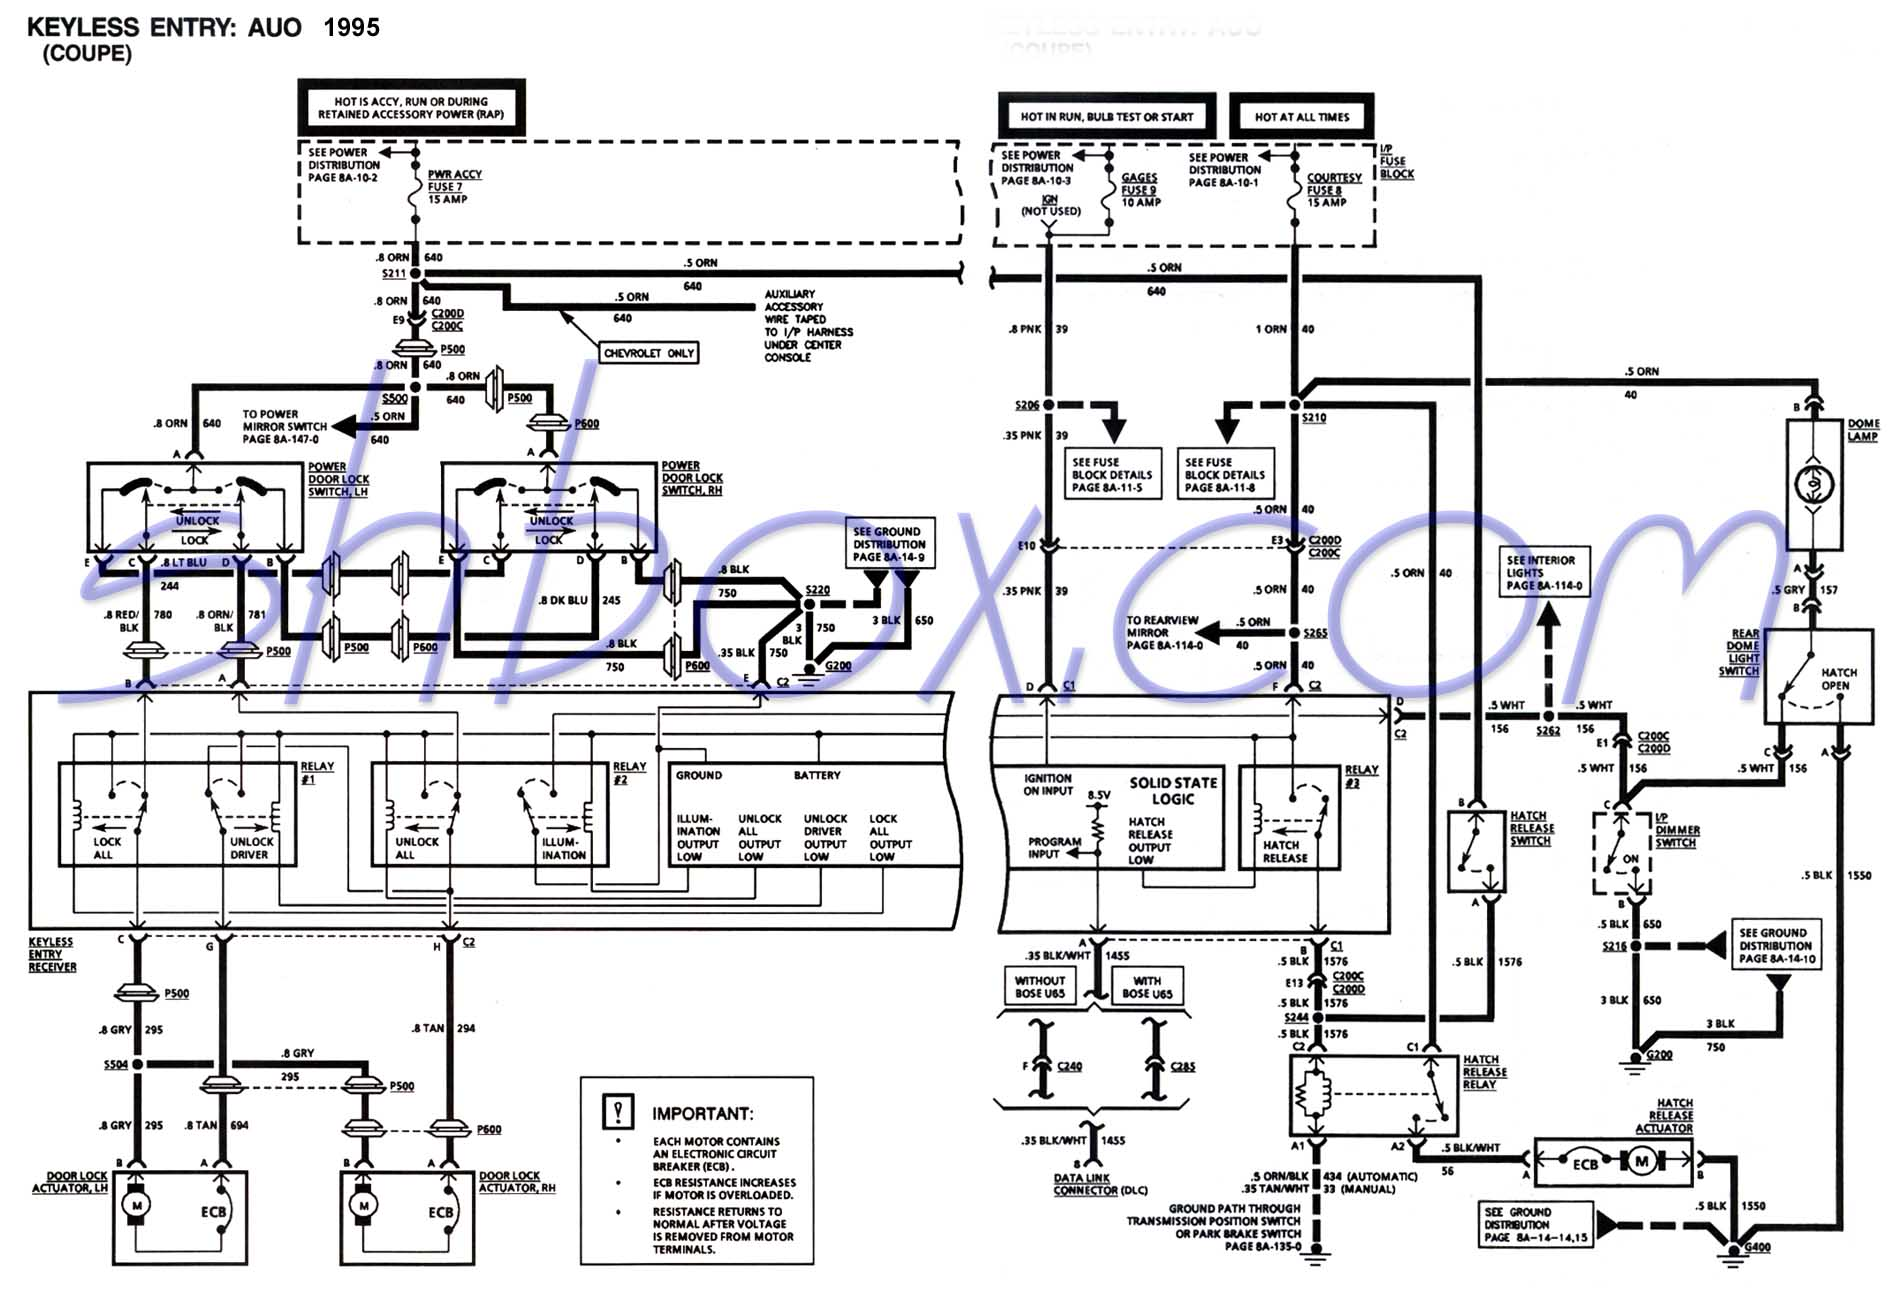 2007 chevy cobalt lt stereo wiring diagram sony cdx gt32w where is factory keyless entry module/electronics located? - ls1tech camaro and firebird forum ...